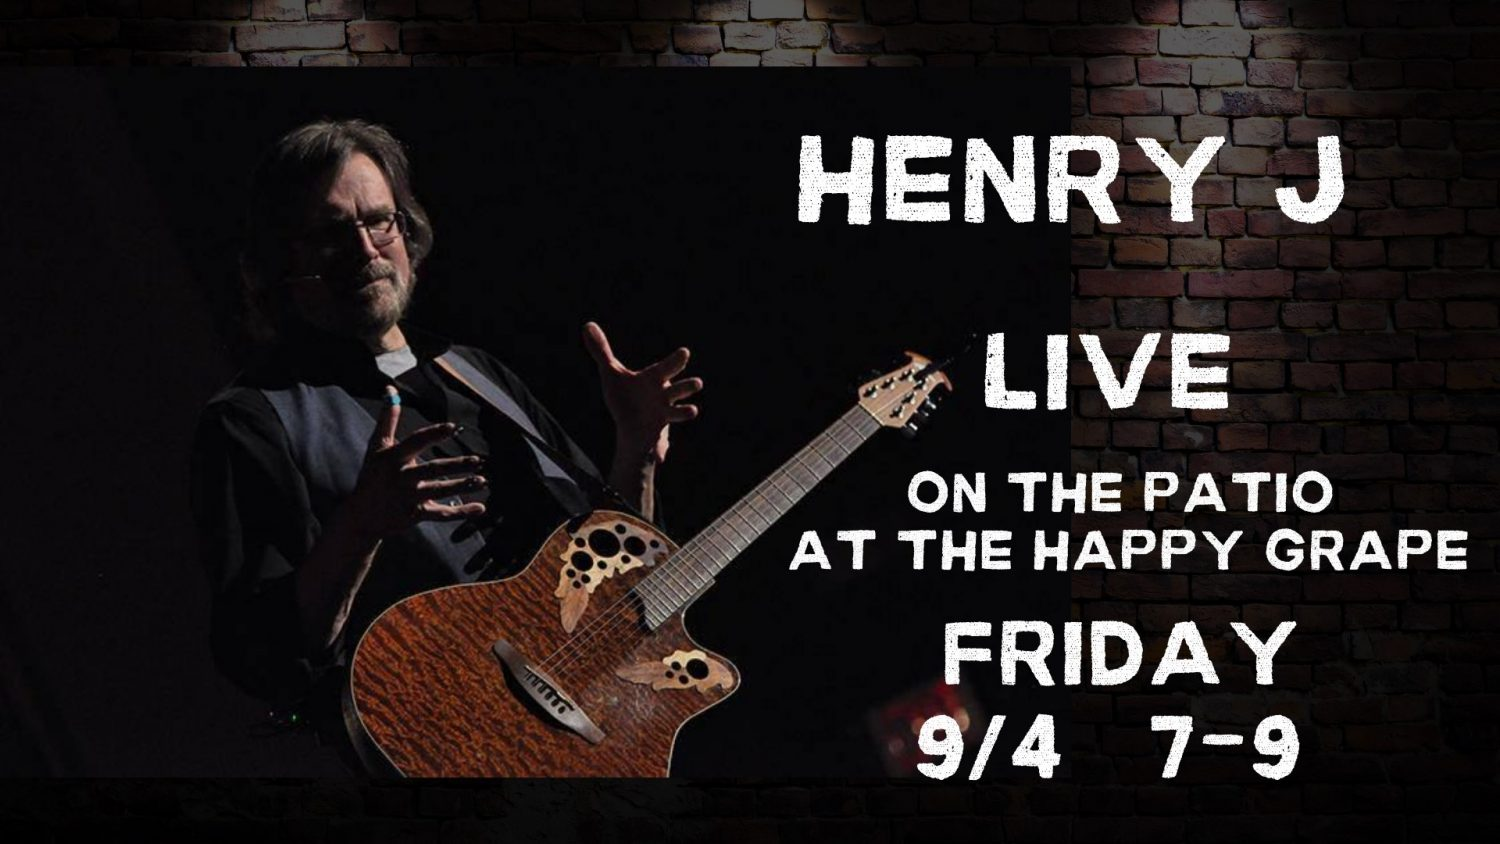 Henry J live at The Happy Grape